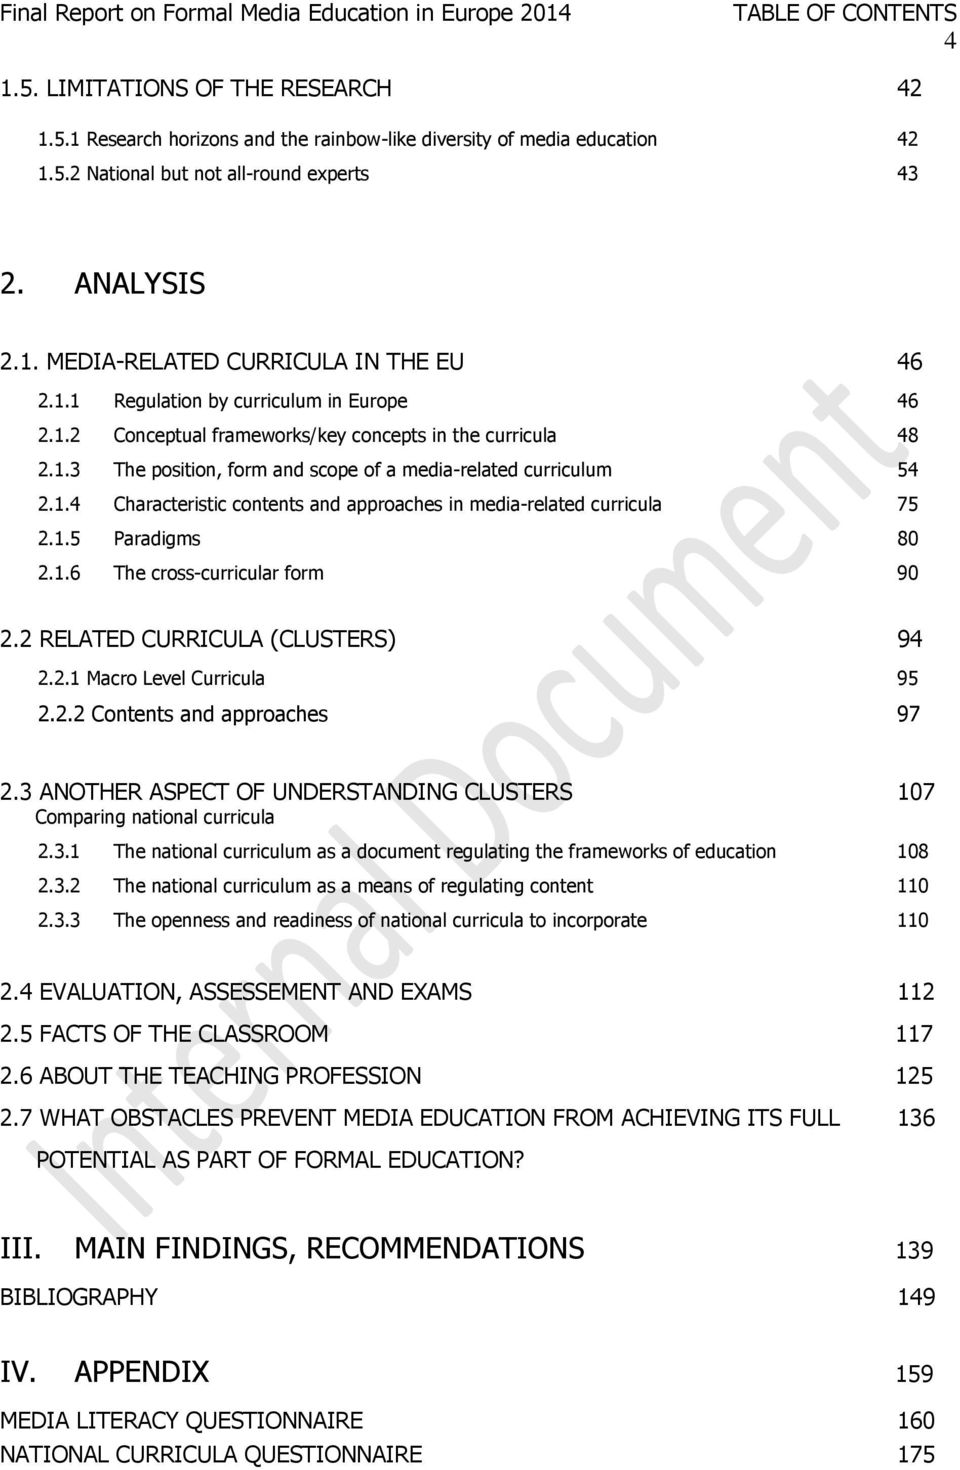 1.5 Paradigms 80 2.1.6 The cross-curricular form 90 2.2 RELATED CURRICULA (CLUSTERS) 94 2.2.1 Macro Level Curricula 95 2.2.2 Contents and approaches 97 2.